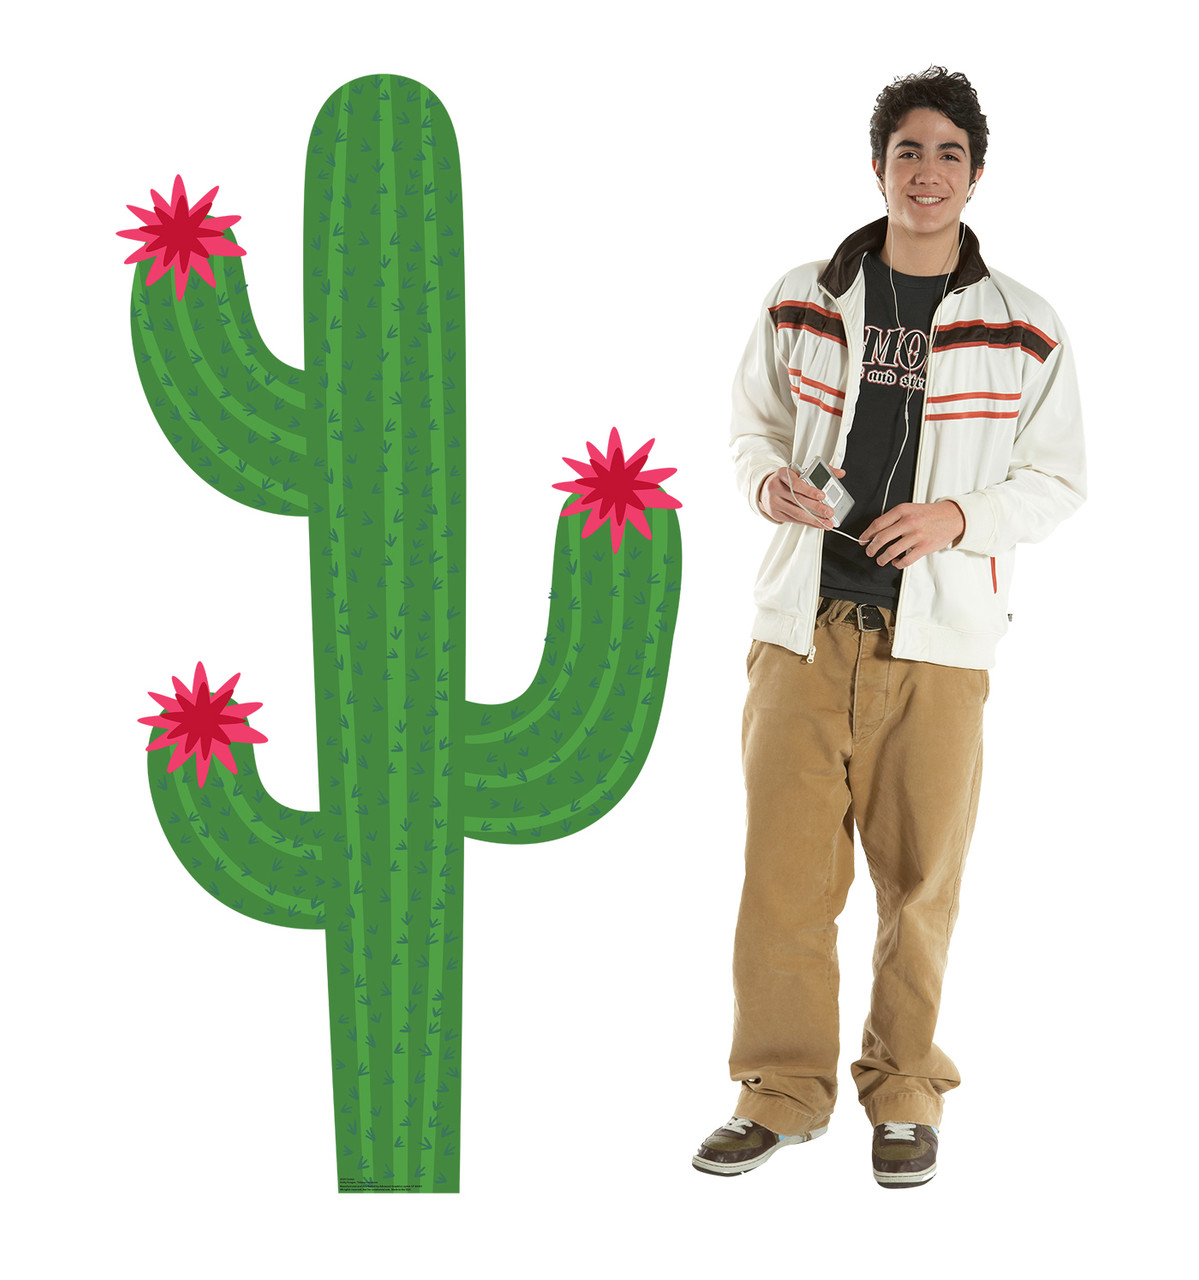 Life-size cardboard standee of a Cactus Lifesize